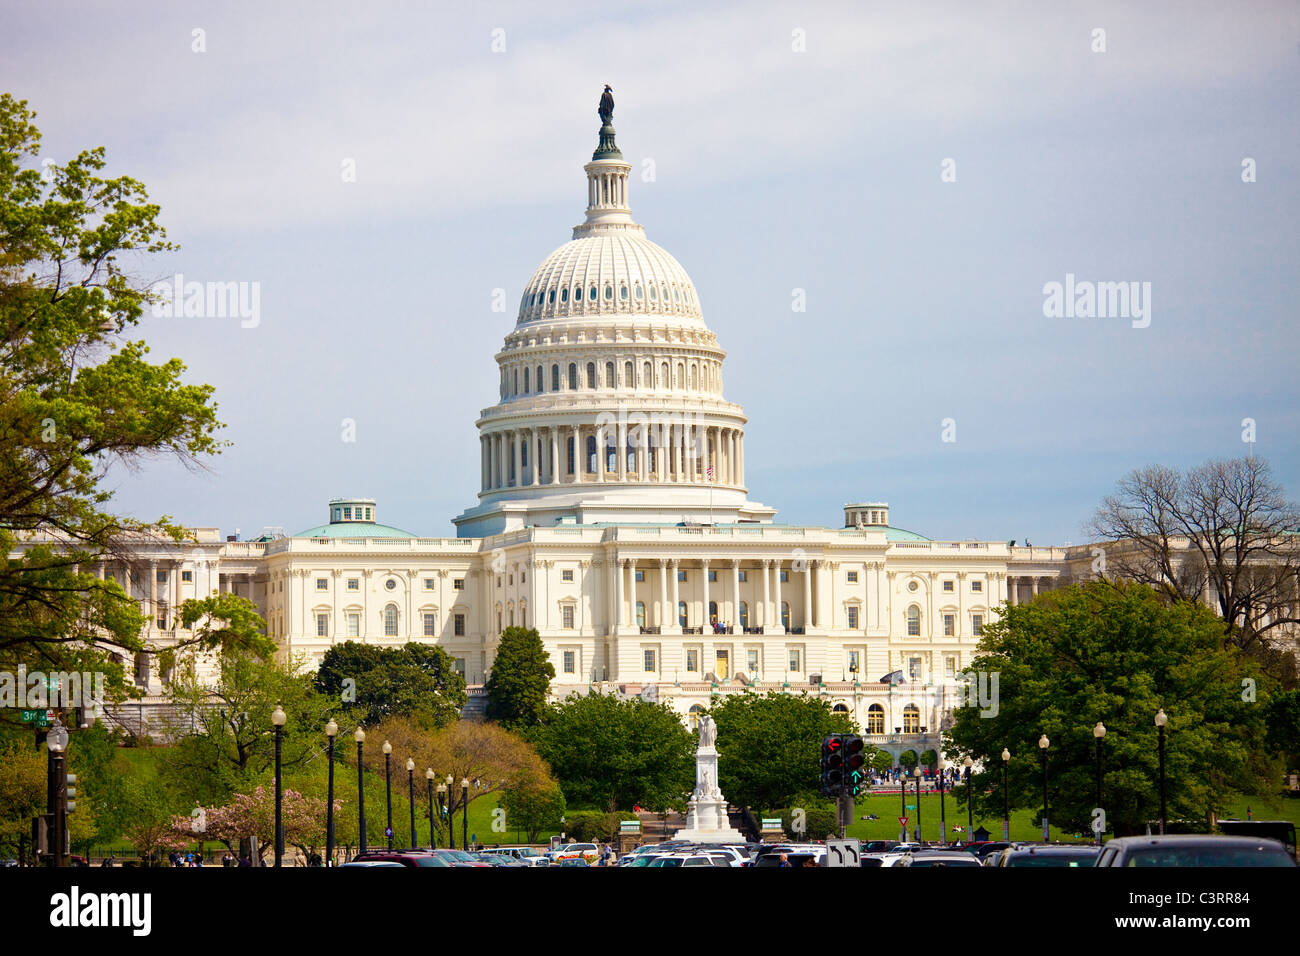 Capitol building, Washington DC - Stock Image